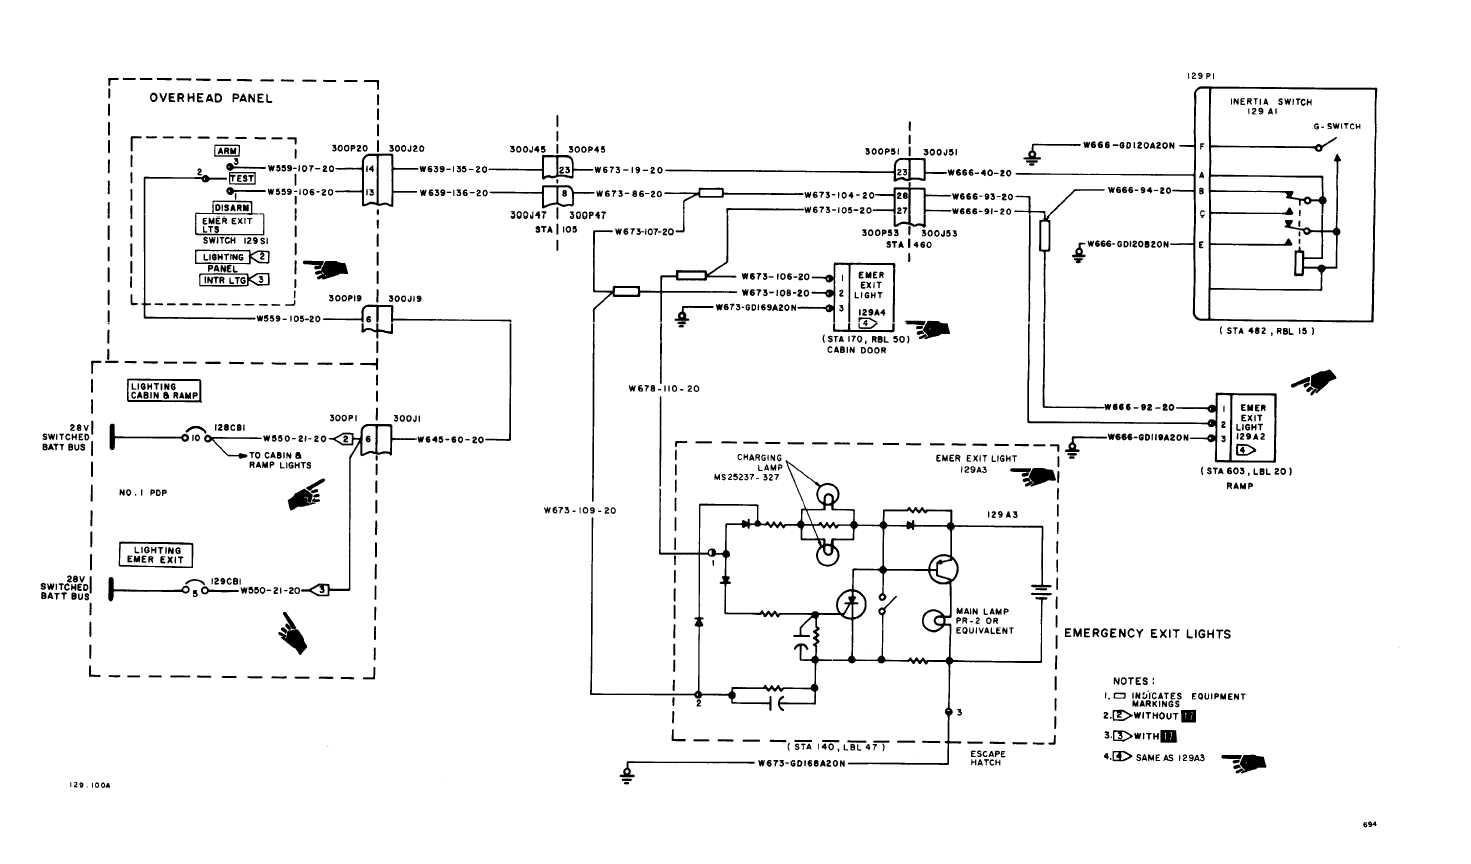 lighting wire diagram pioneer deh p7400mp wiring emergency ballast get free image